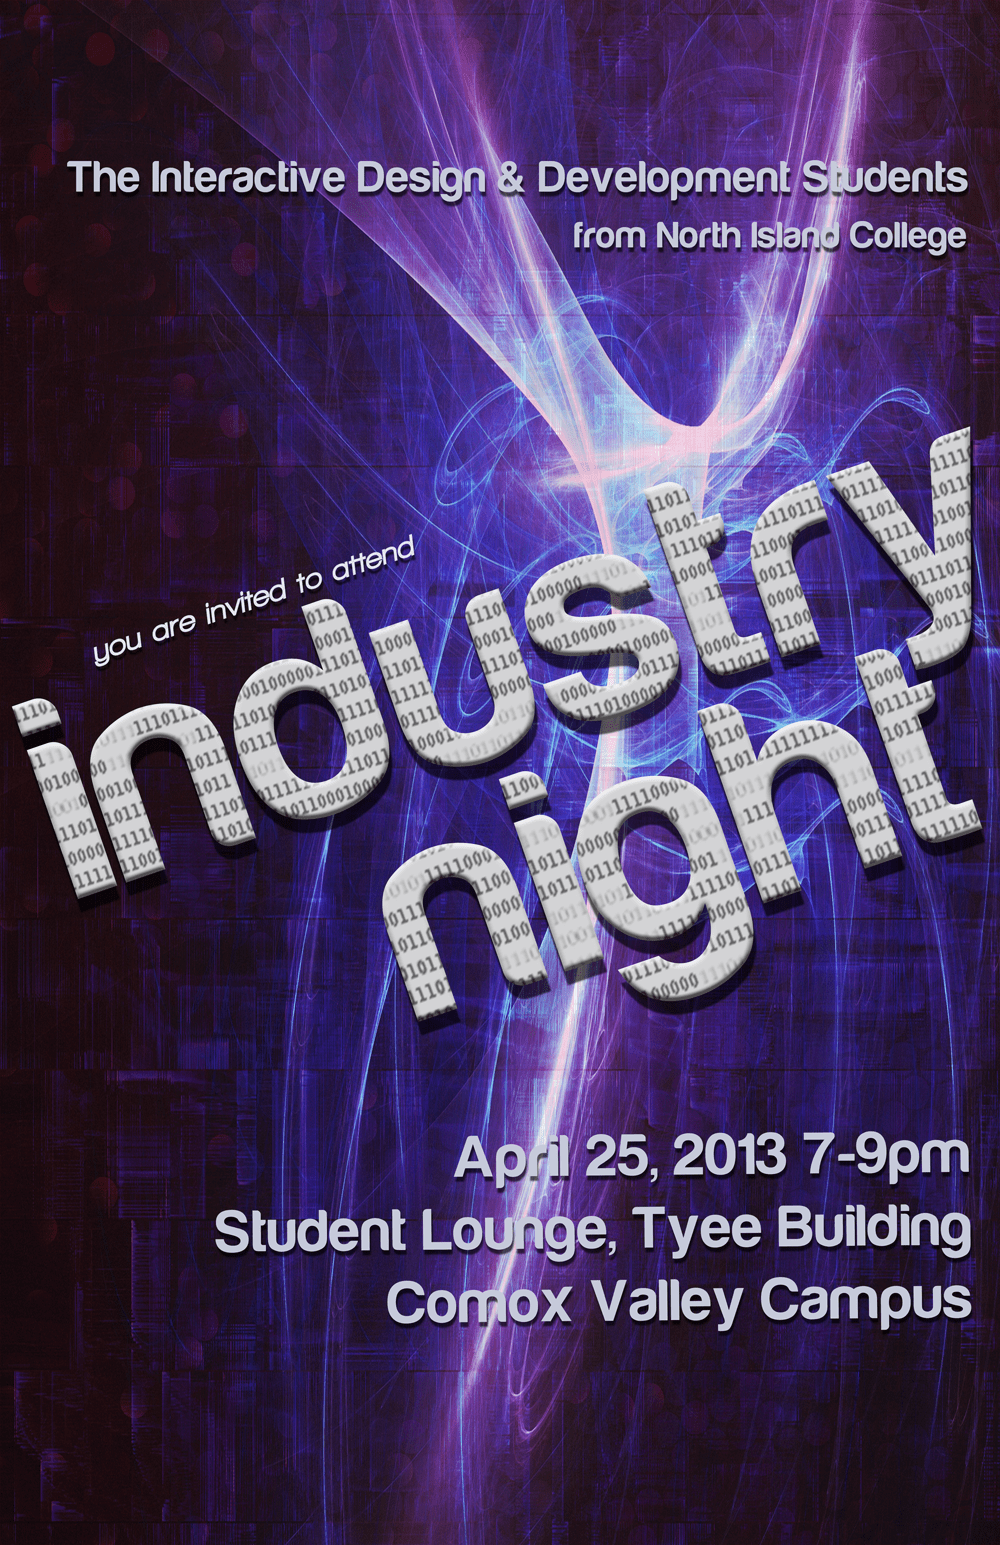 Industry night event poster designed by Maggie Ziegler